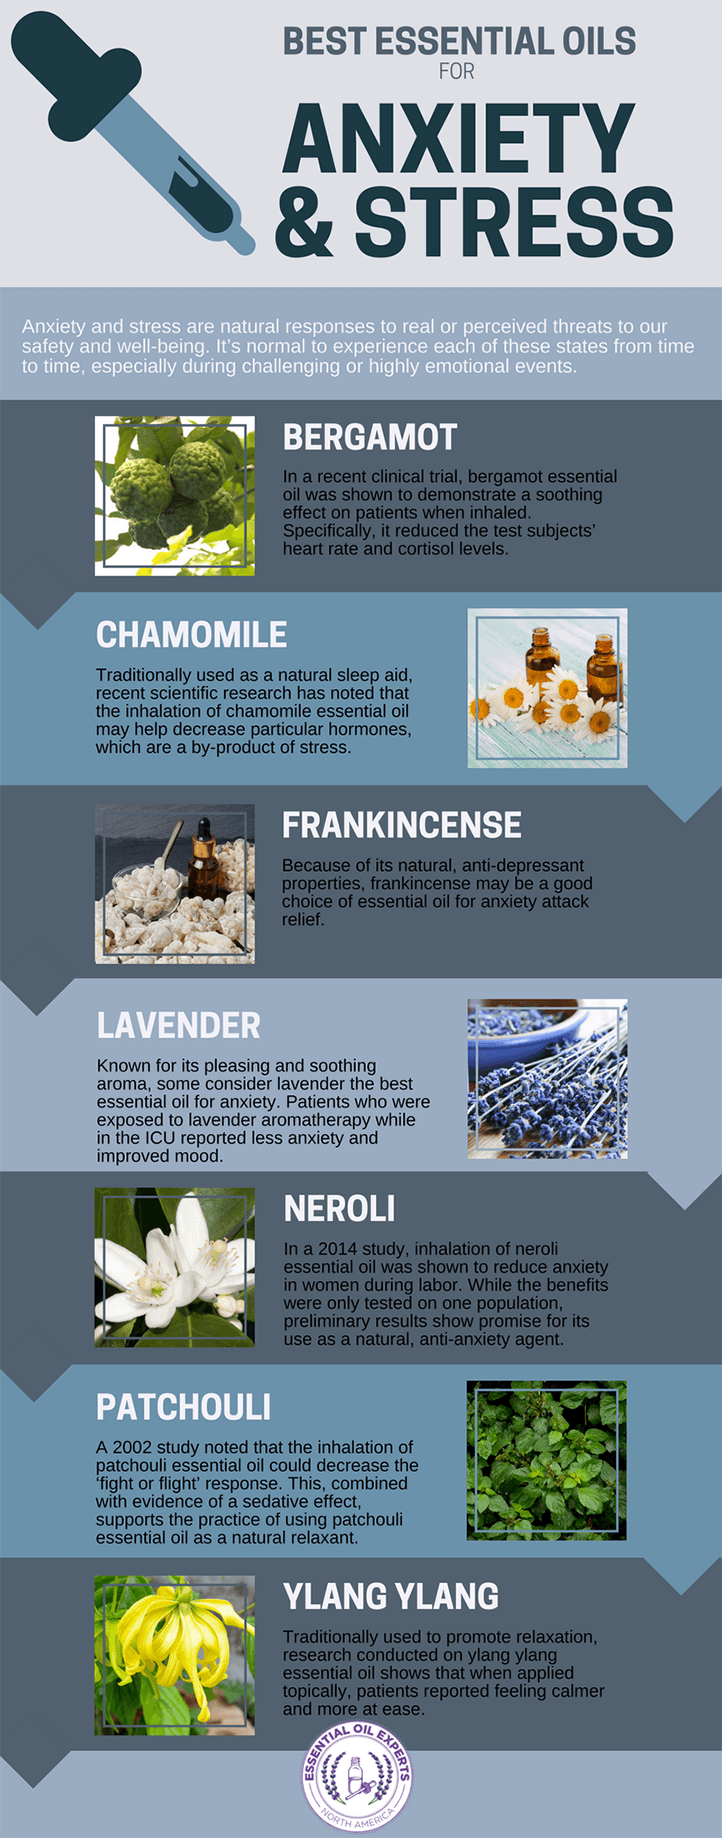 Top 7 Best Essential Oils For Anxiety Stress You Should Try